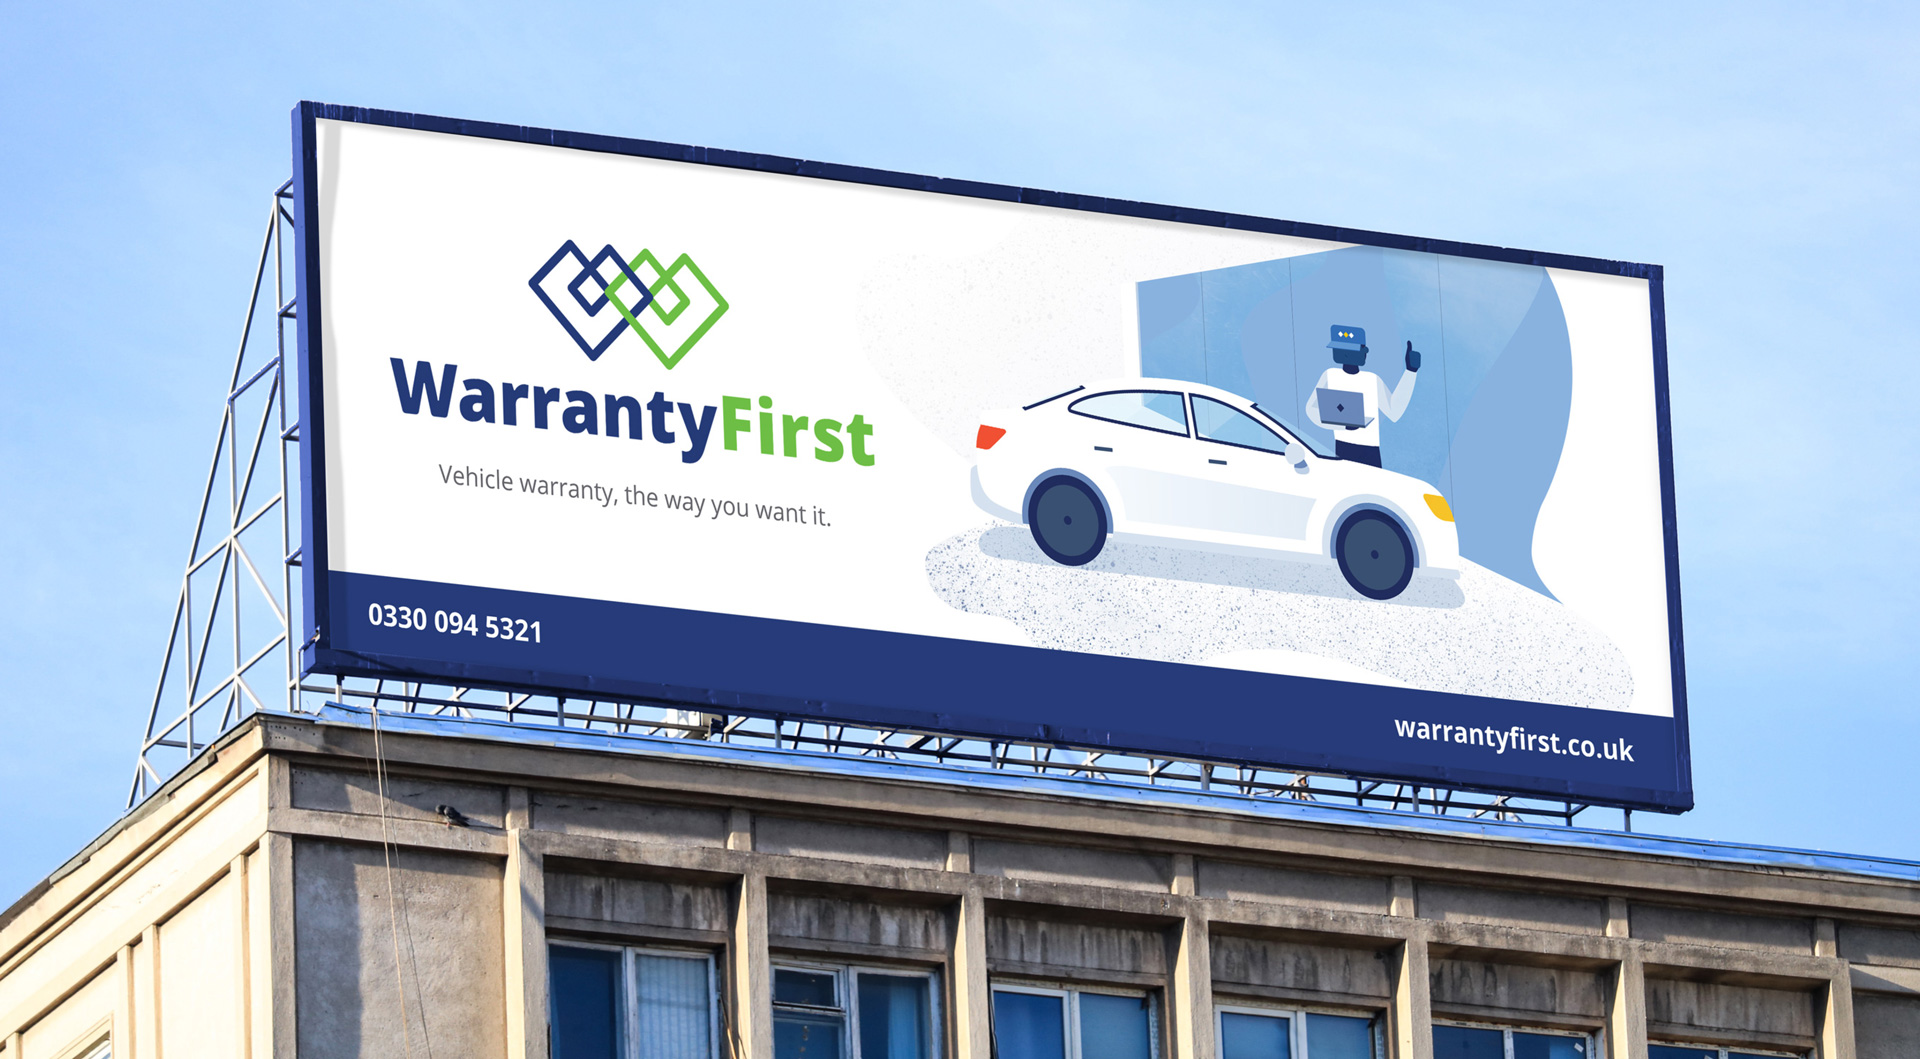 A new identity for Warranty First